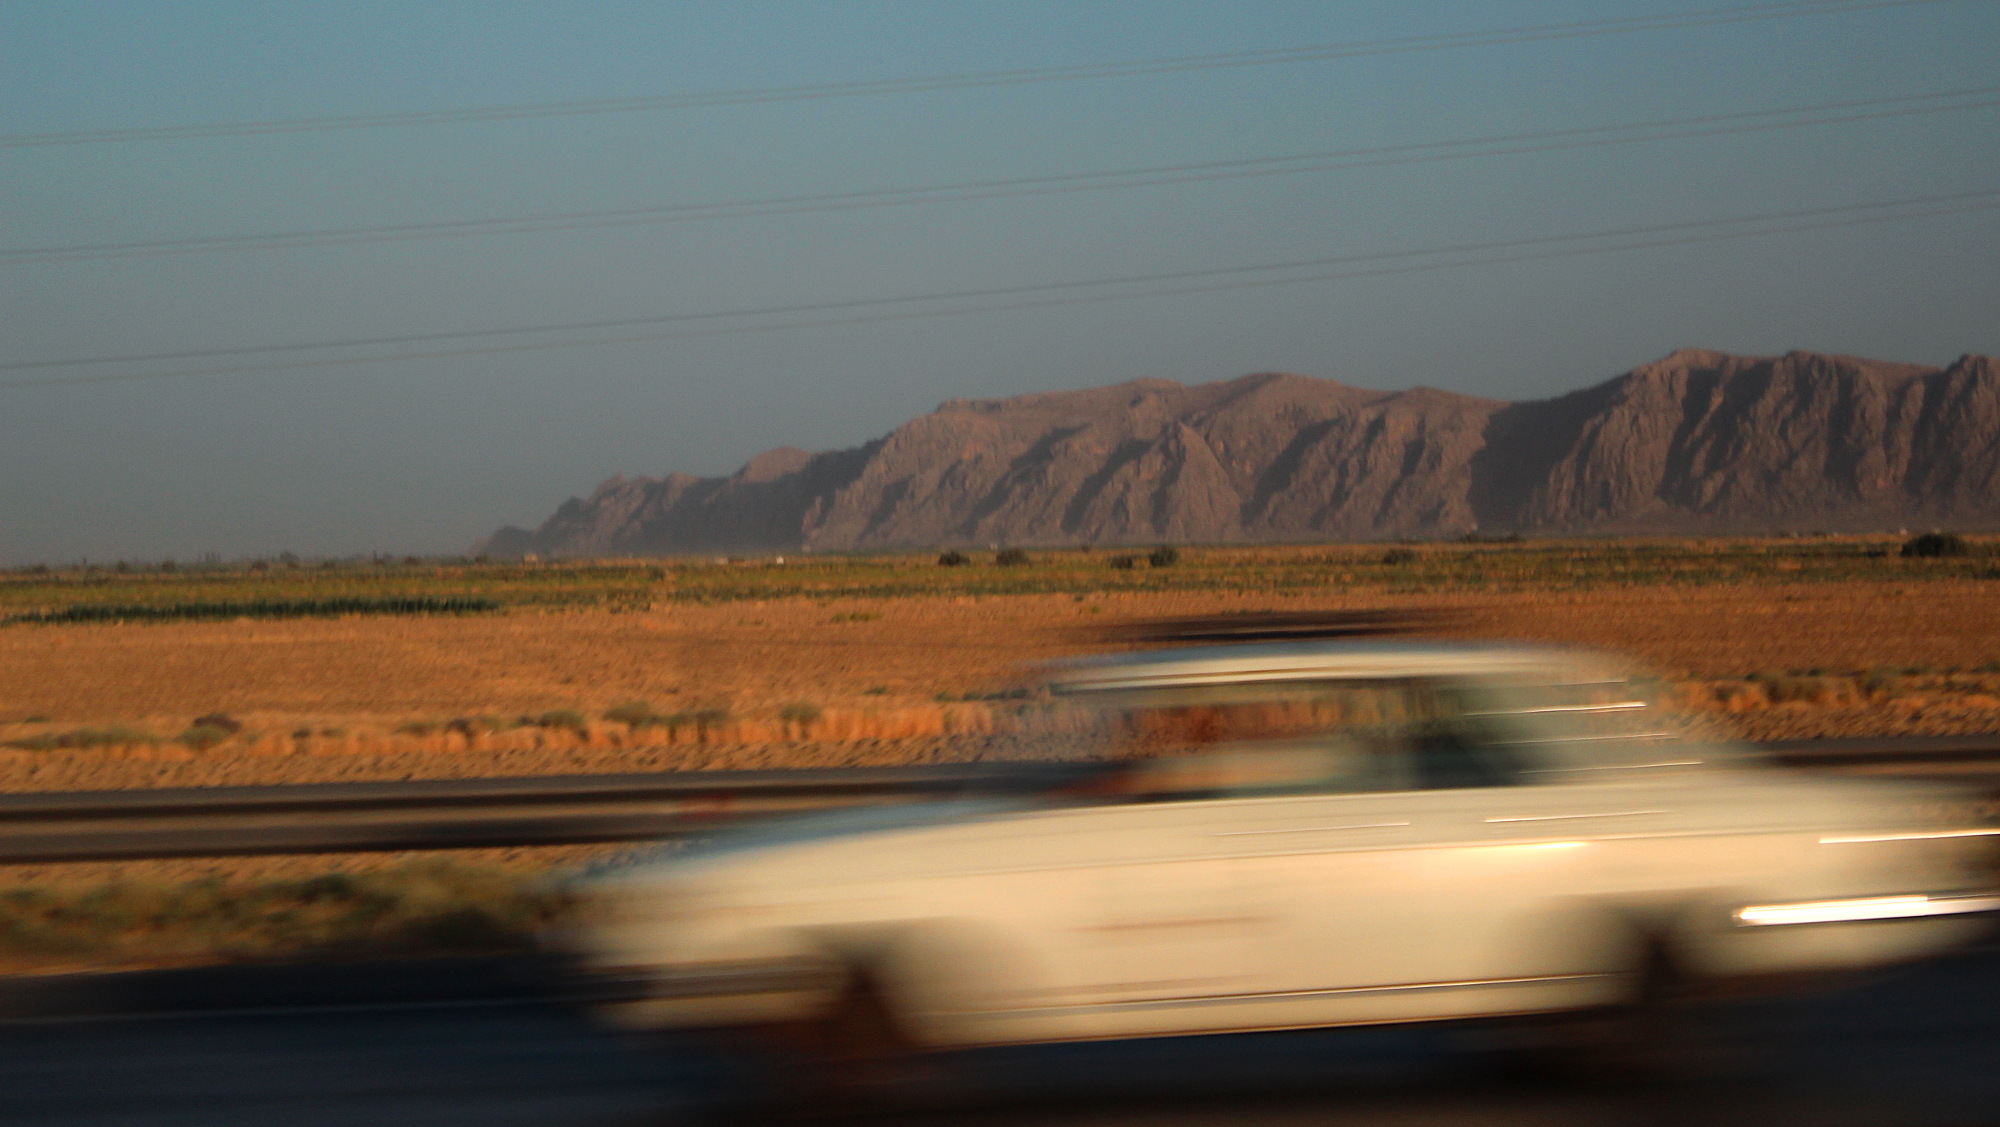 Guided tour of Iran. An atmospheric travel picture of a car driving past with sunset, desert and mountains.